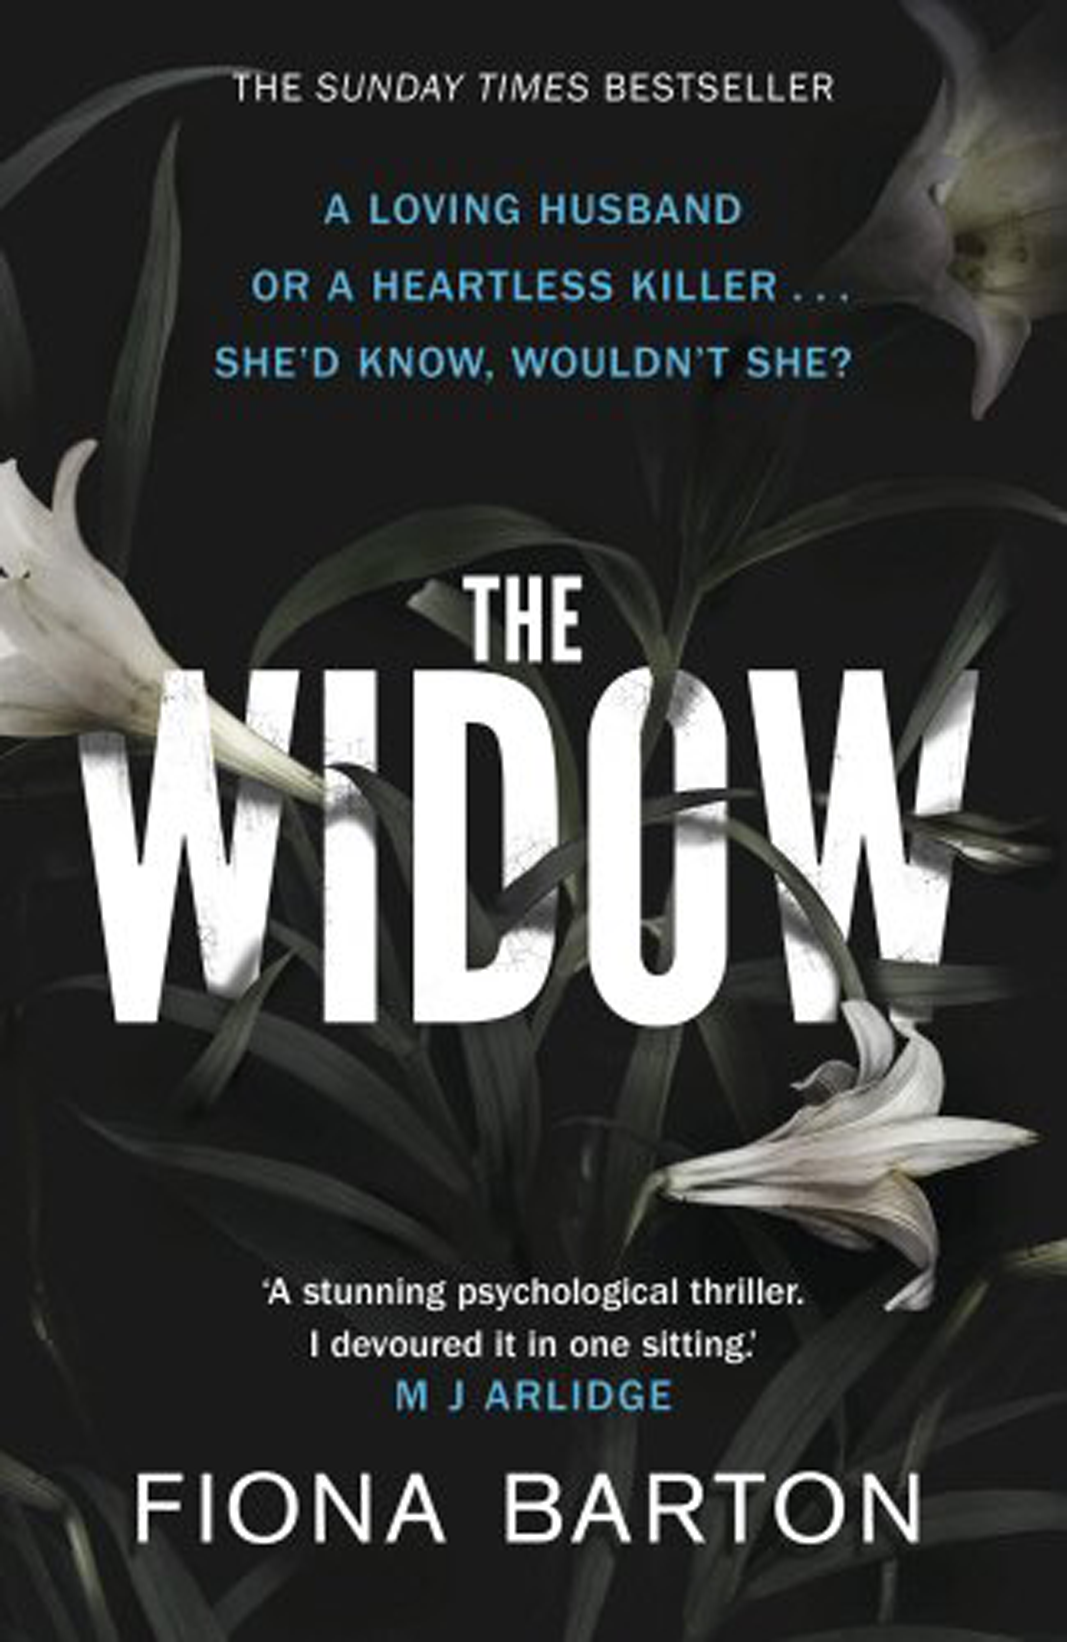 """<p><em><strong>The Widow</strong></em></p> <p>By Fiona Barton</p> <p>This is the story we don't often hear. What's it like being married to the man on all the front pages, accused of unimaginable evil? Jean Taylor's life and relationship were great until her husband became that """"monster"""". But now he's dead and she's alone for the first time, free to tell her story in her own way.</p> <p><em>The Widow</em> is the fastest-selling debut hardback novel since <em>The Girl on the Train</em> and has already been optioned for TV. </p>"""